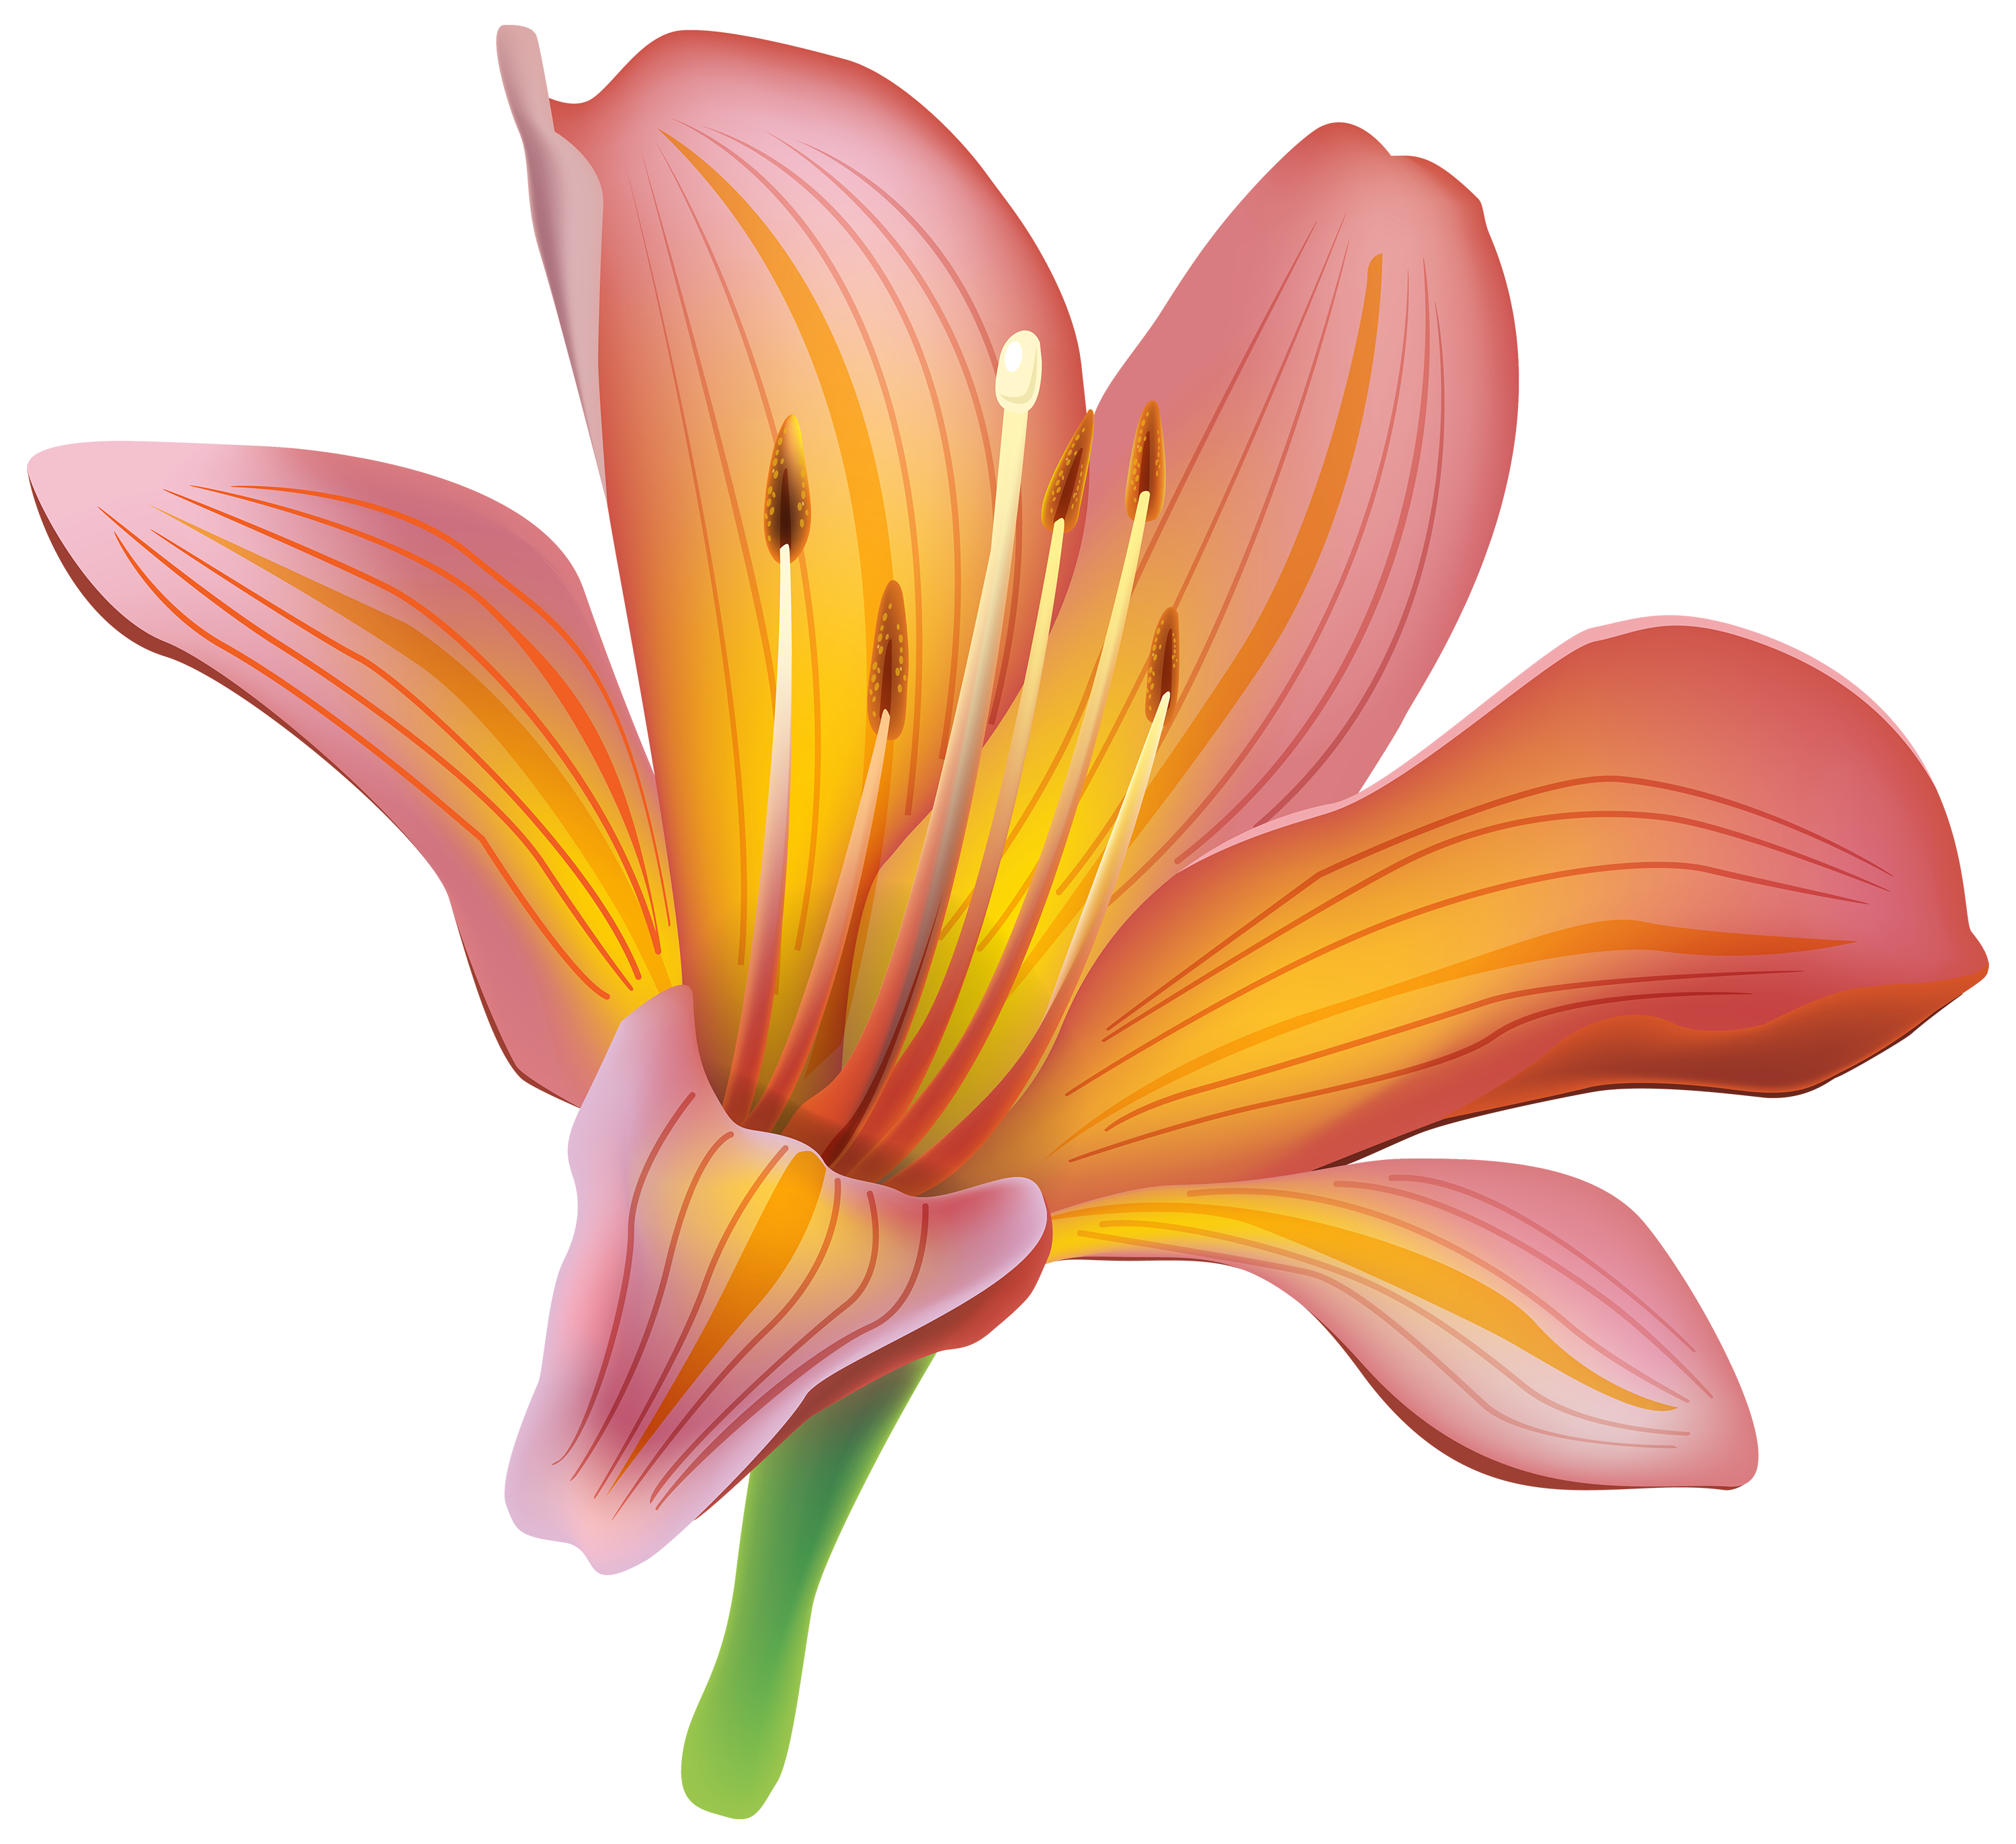 lily transparent vase png